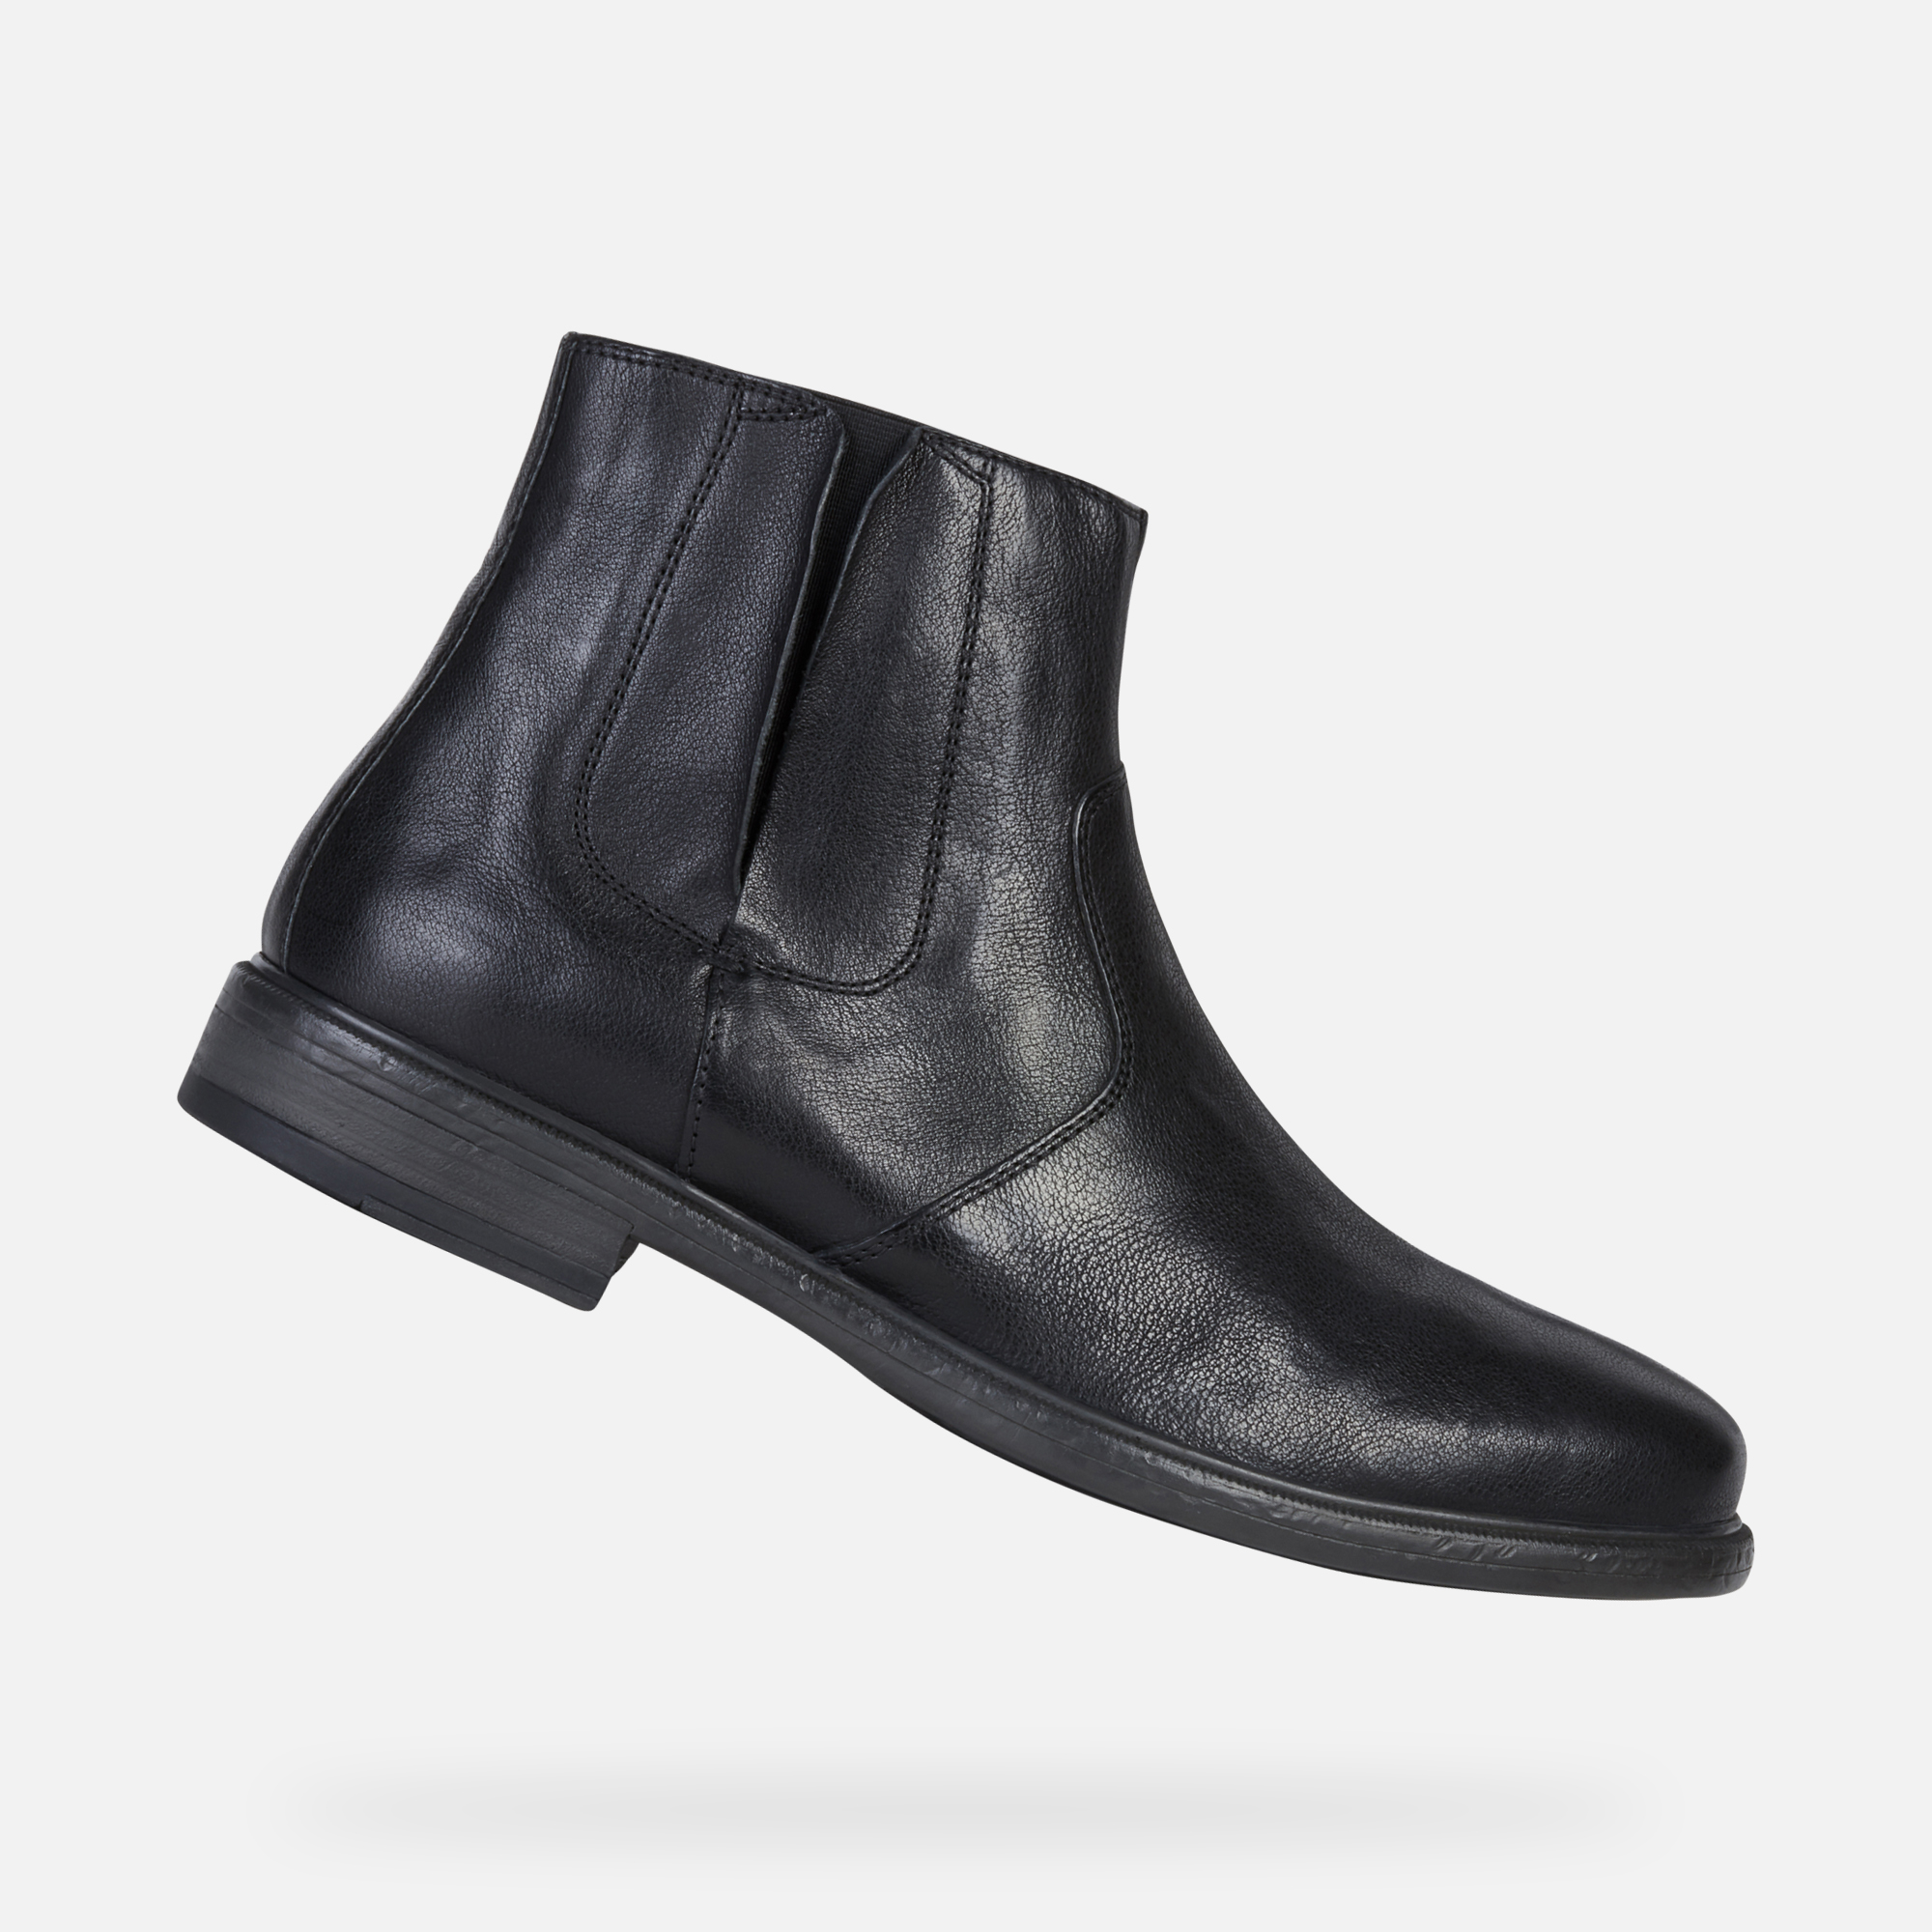 Geox TERENCE Man: Black Ankle Boots   Geox Fall Winter